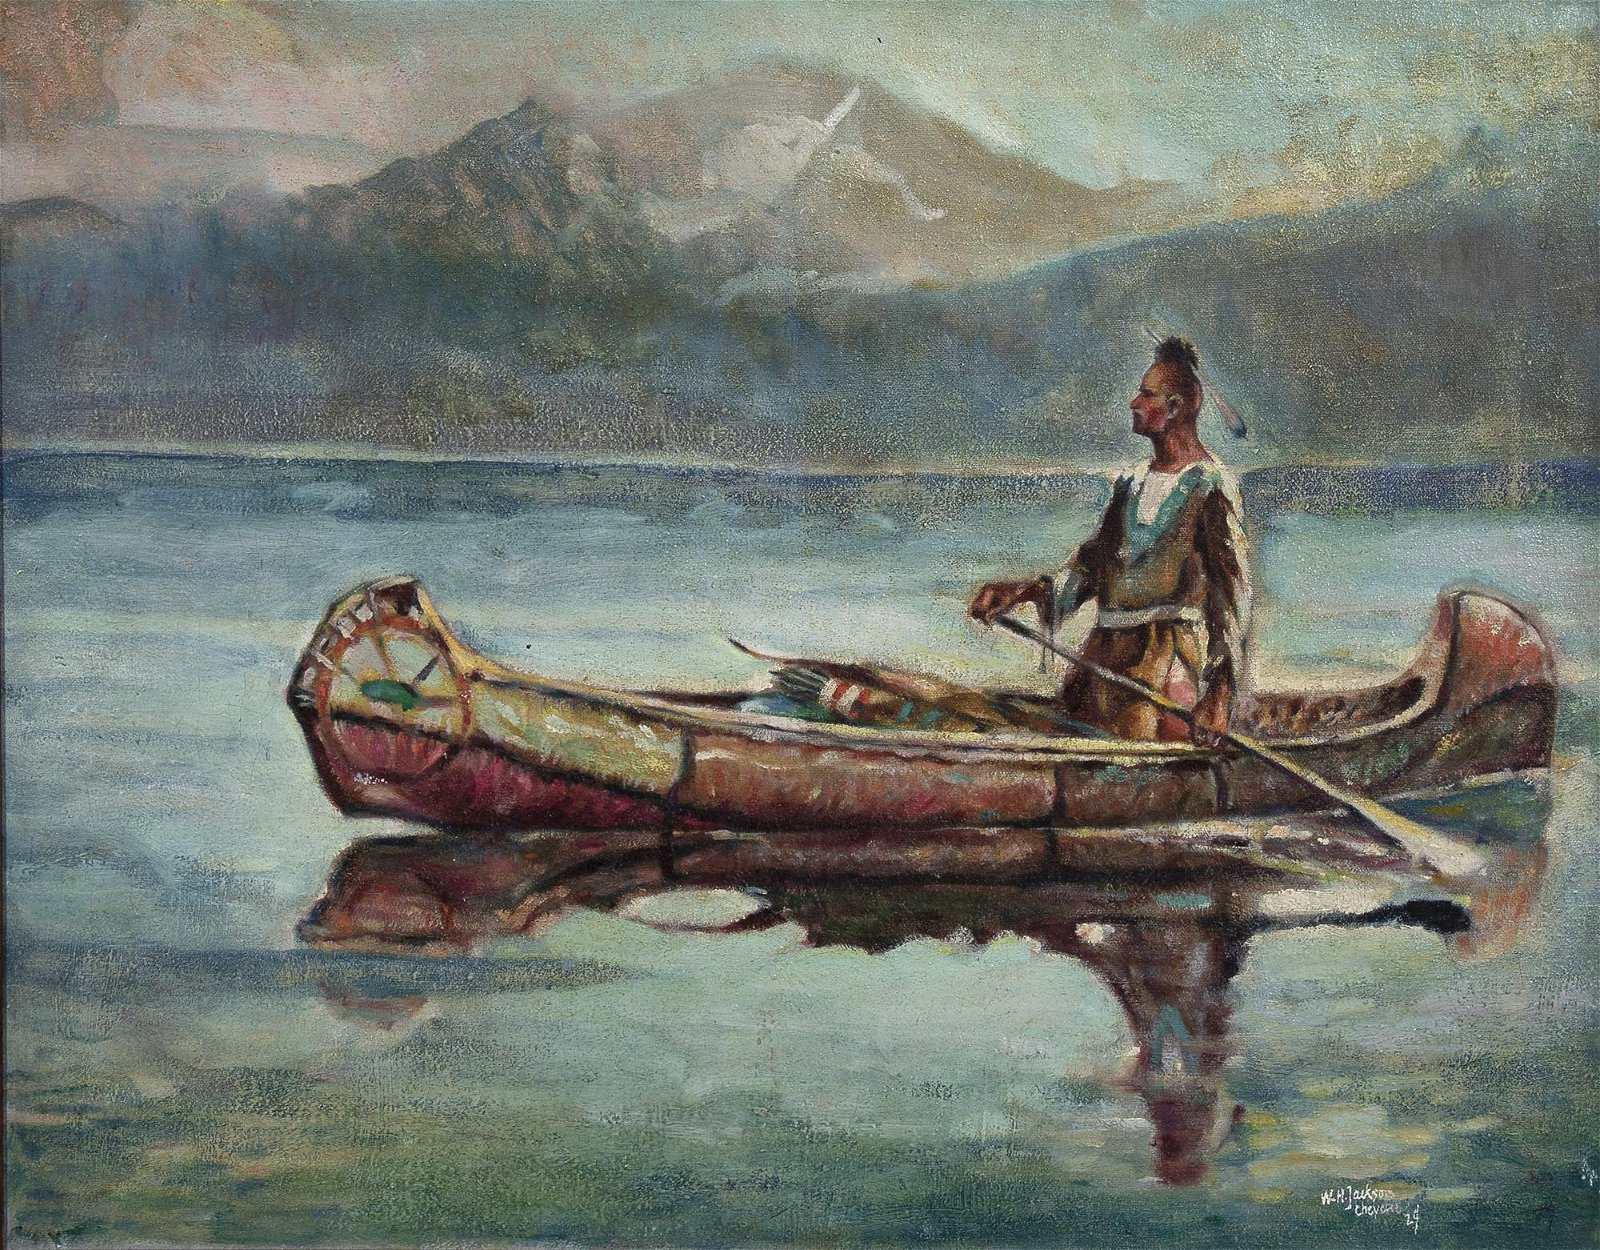 W. H. Jackson, Blackfoot Indian at Grand Teton, WY